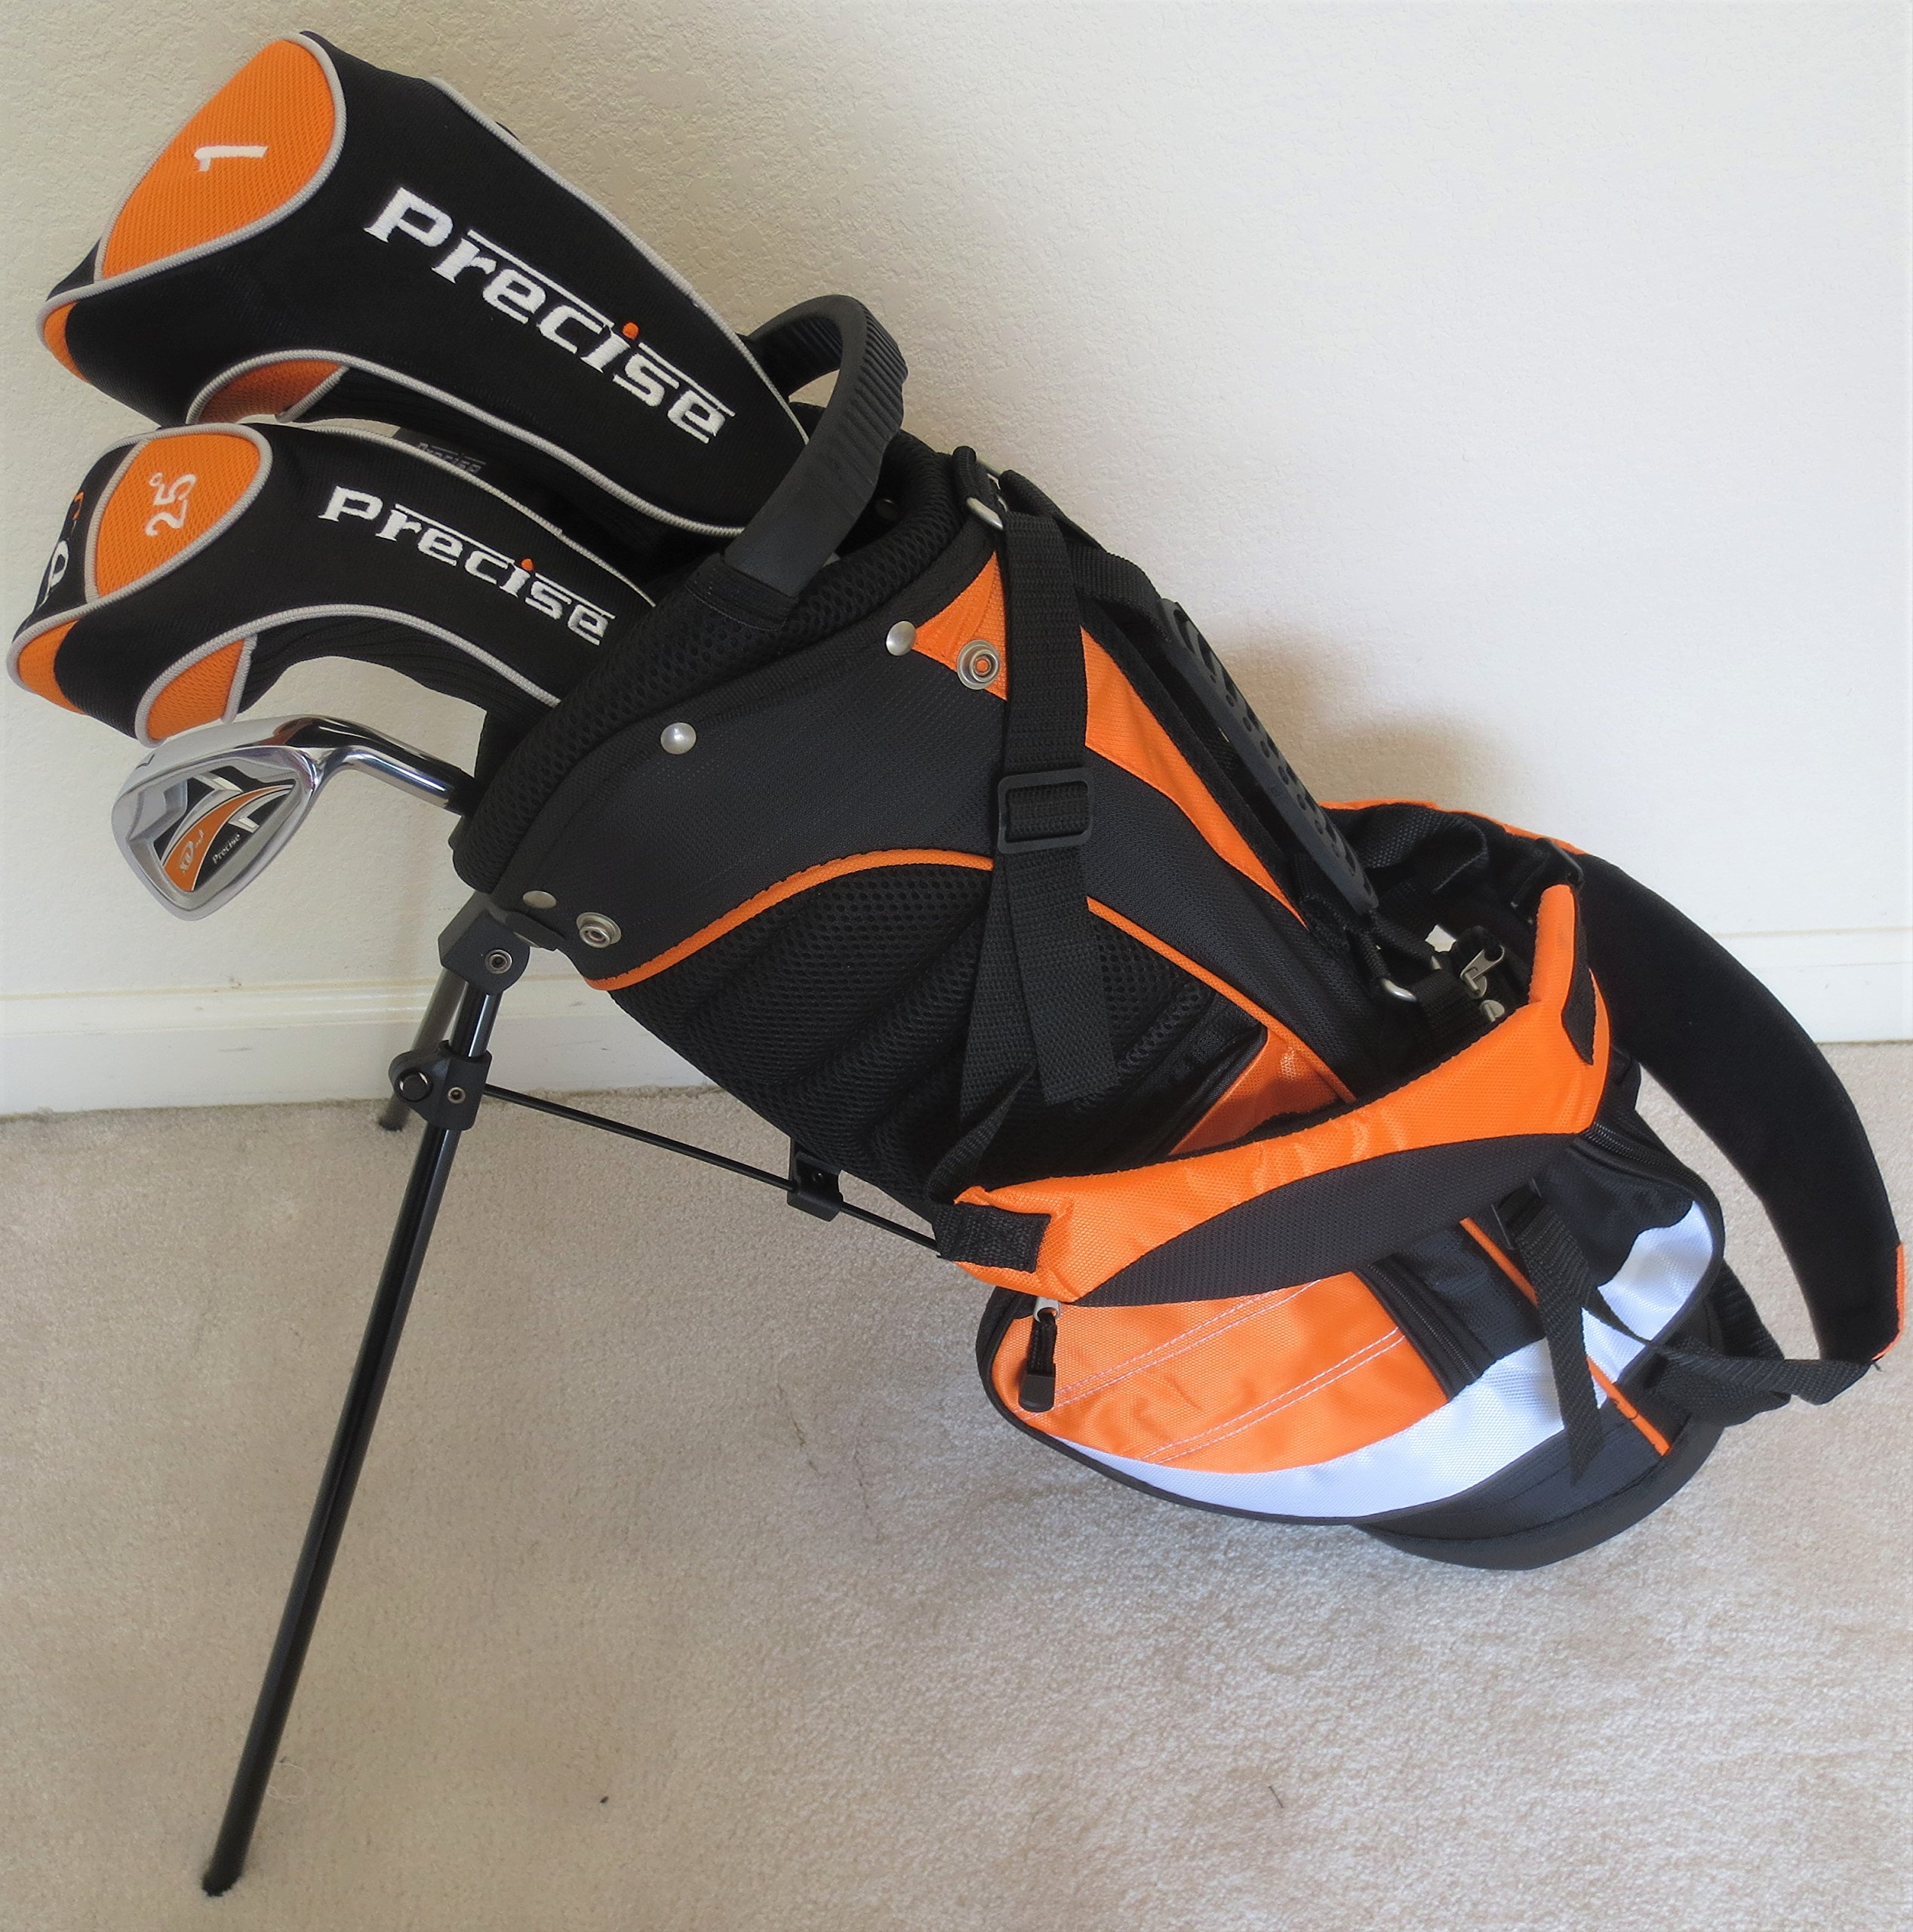 Boys Junior Golf Club Set with Stand Bag for Kids Ages 3-6 Orange Color Right Handed Graphite Shafts Custom Fit by Junior Power Golf Equipment (Image #1)